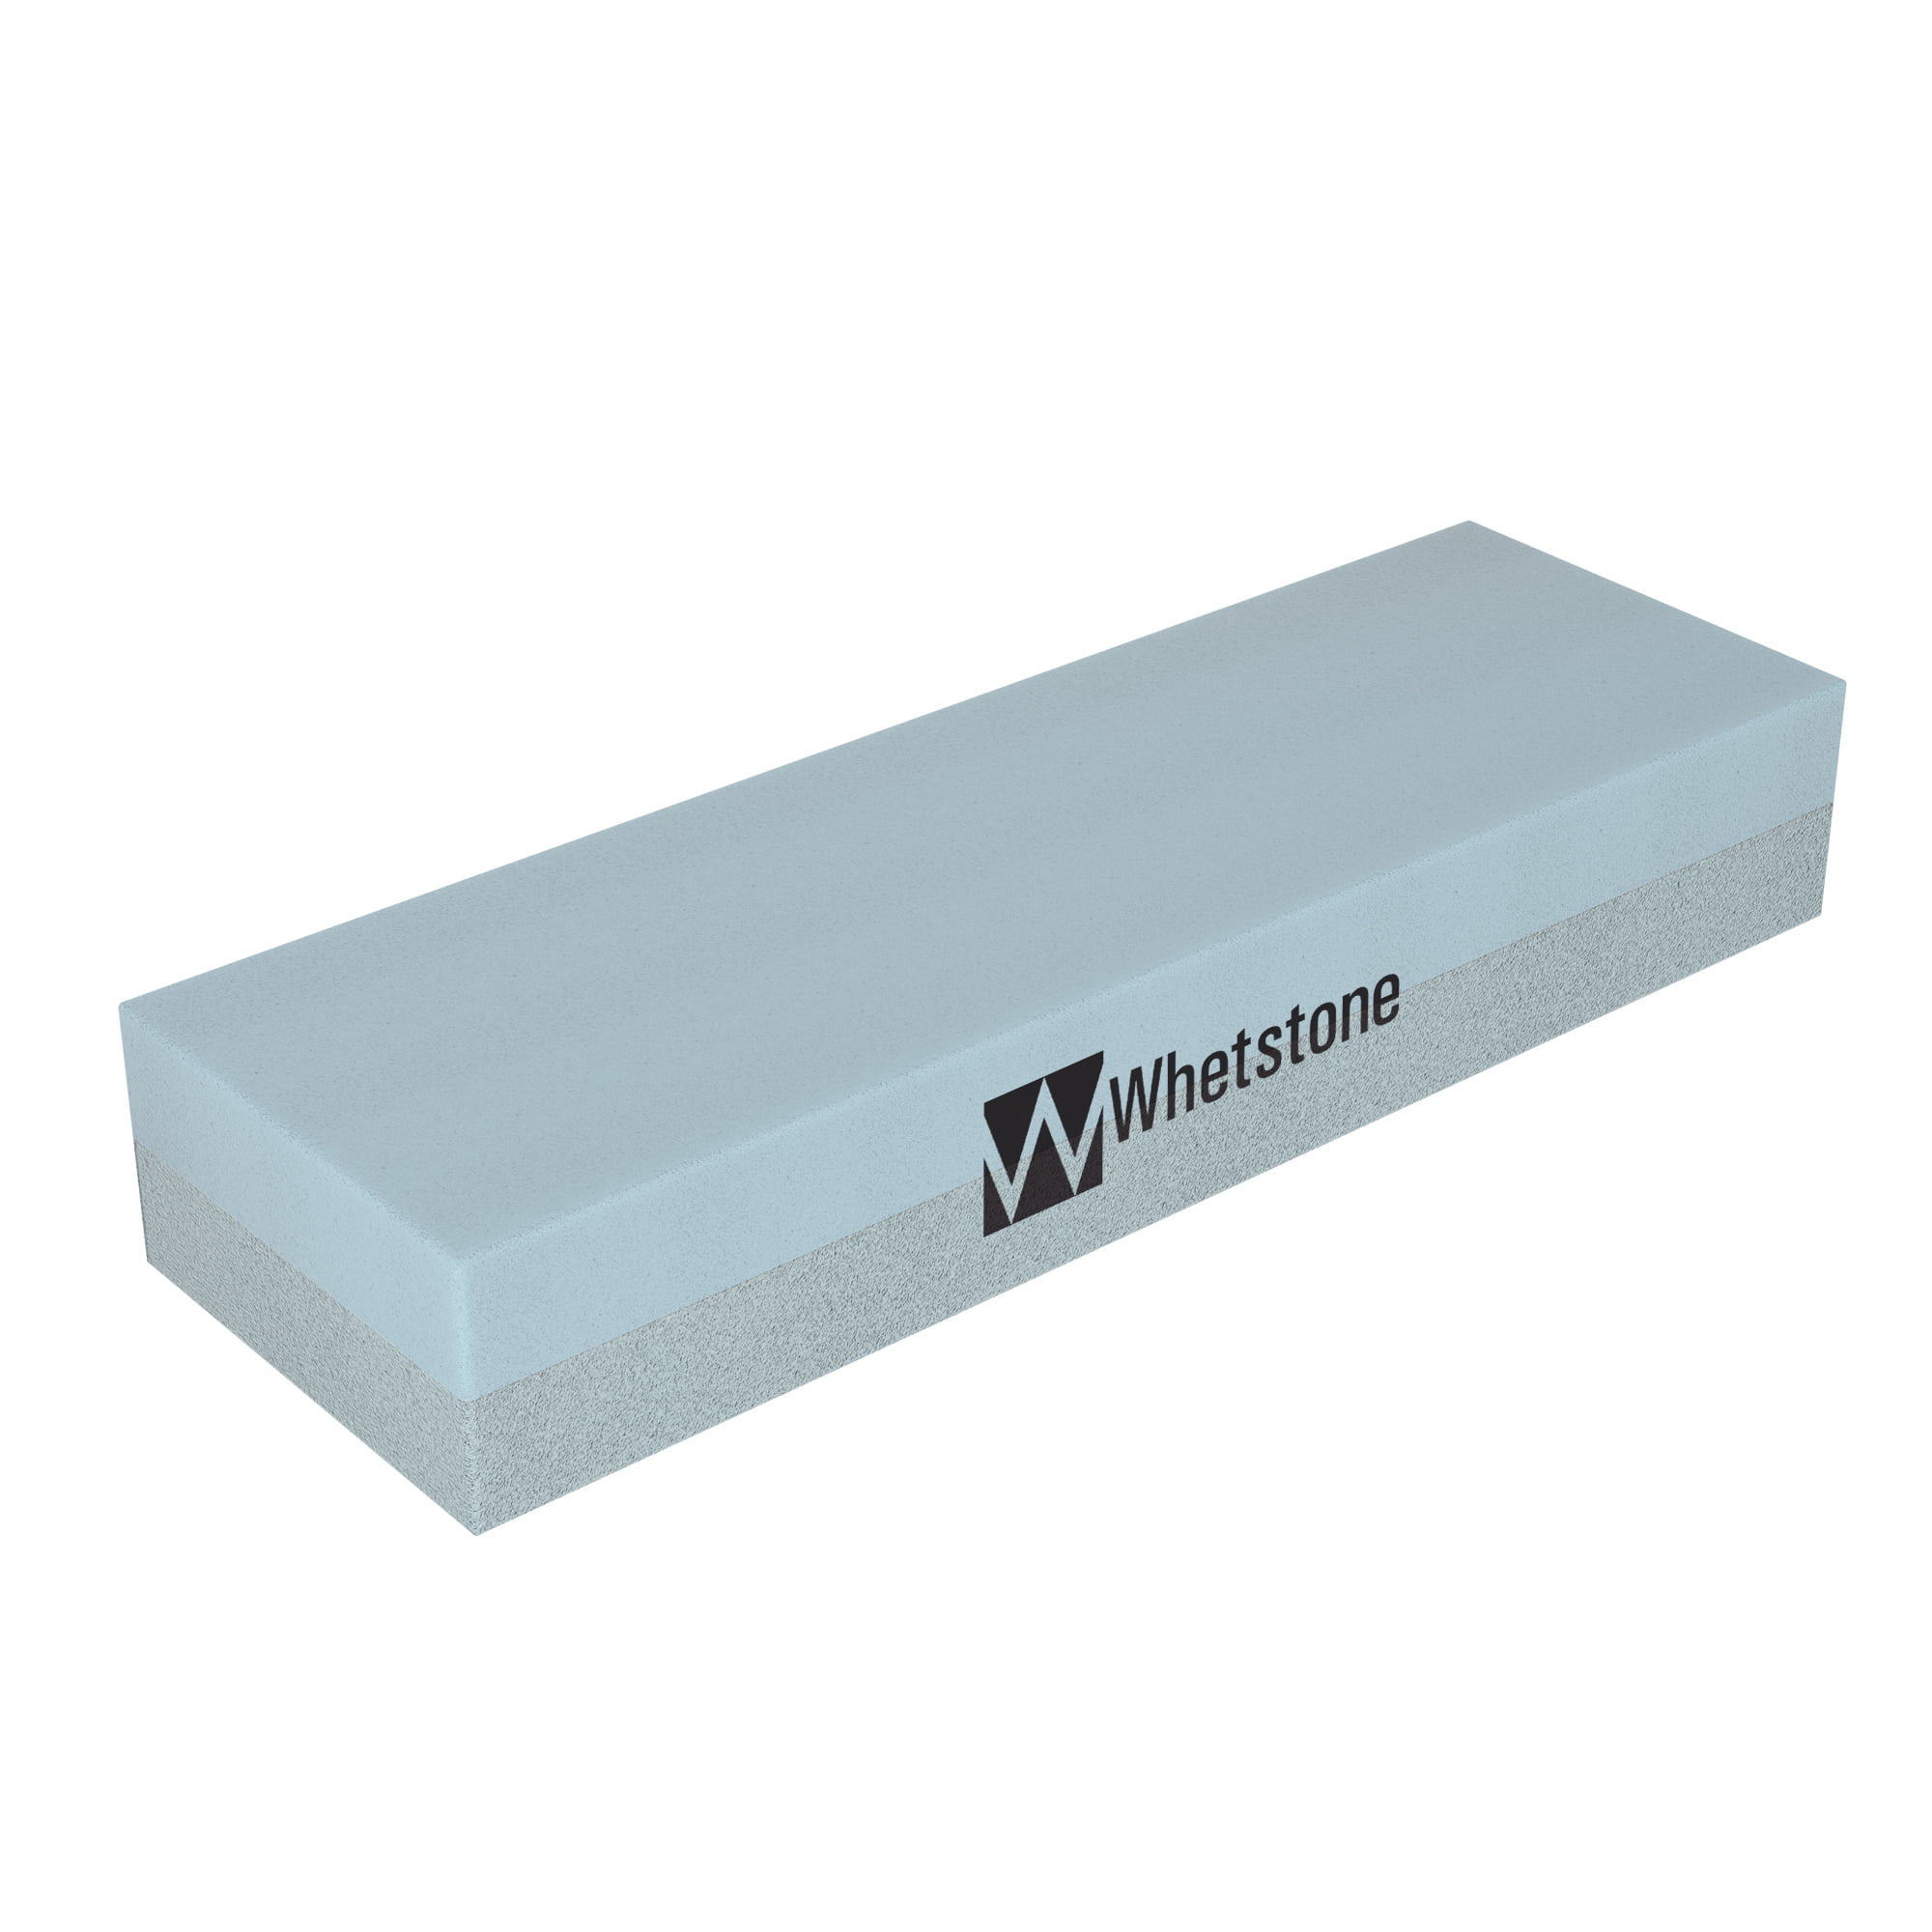 Knife Sharpening Stone-Dual Sided 400 1000 Grit Water Stone-Sharpener and Polishing Tool for Kitchen, Hunting and Pocket... by TRADEMARK GAMES INC